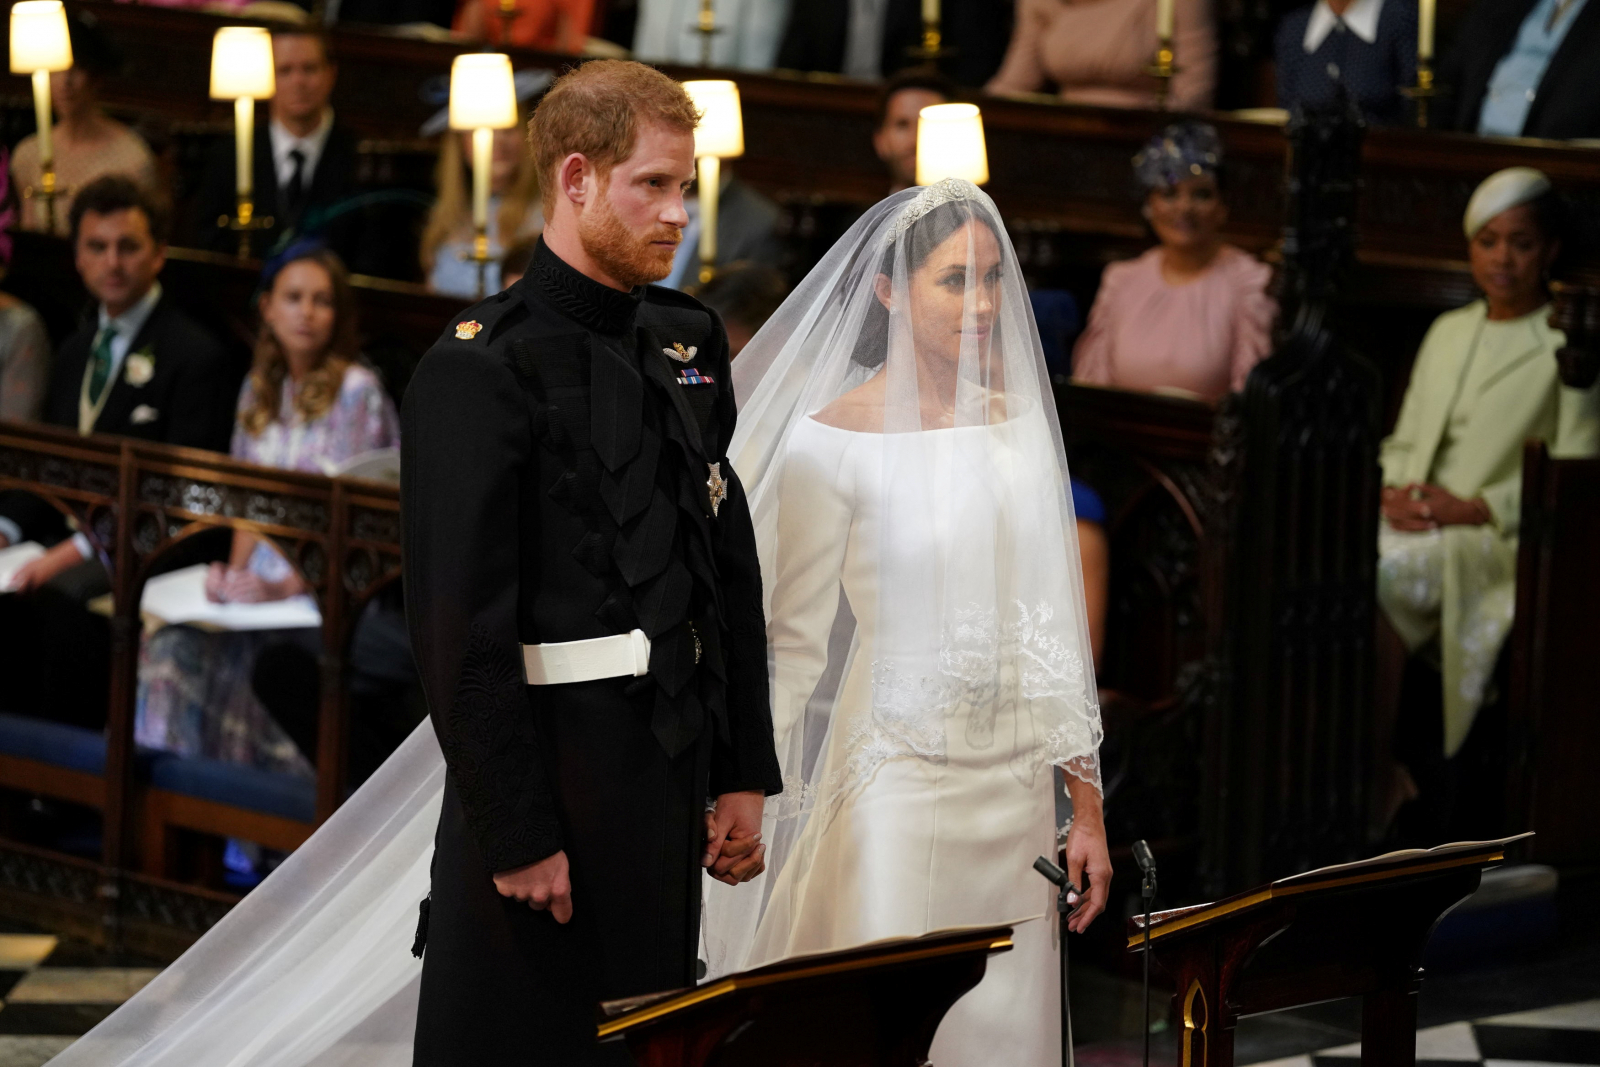 Royal wedding of Harry and Meghan